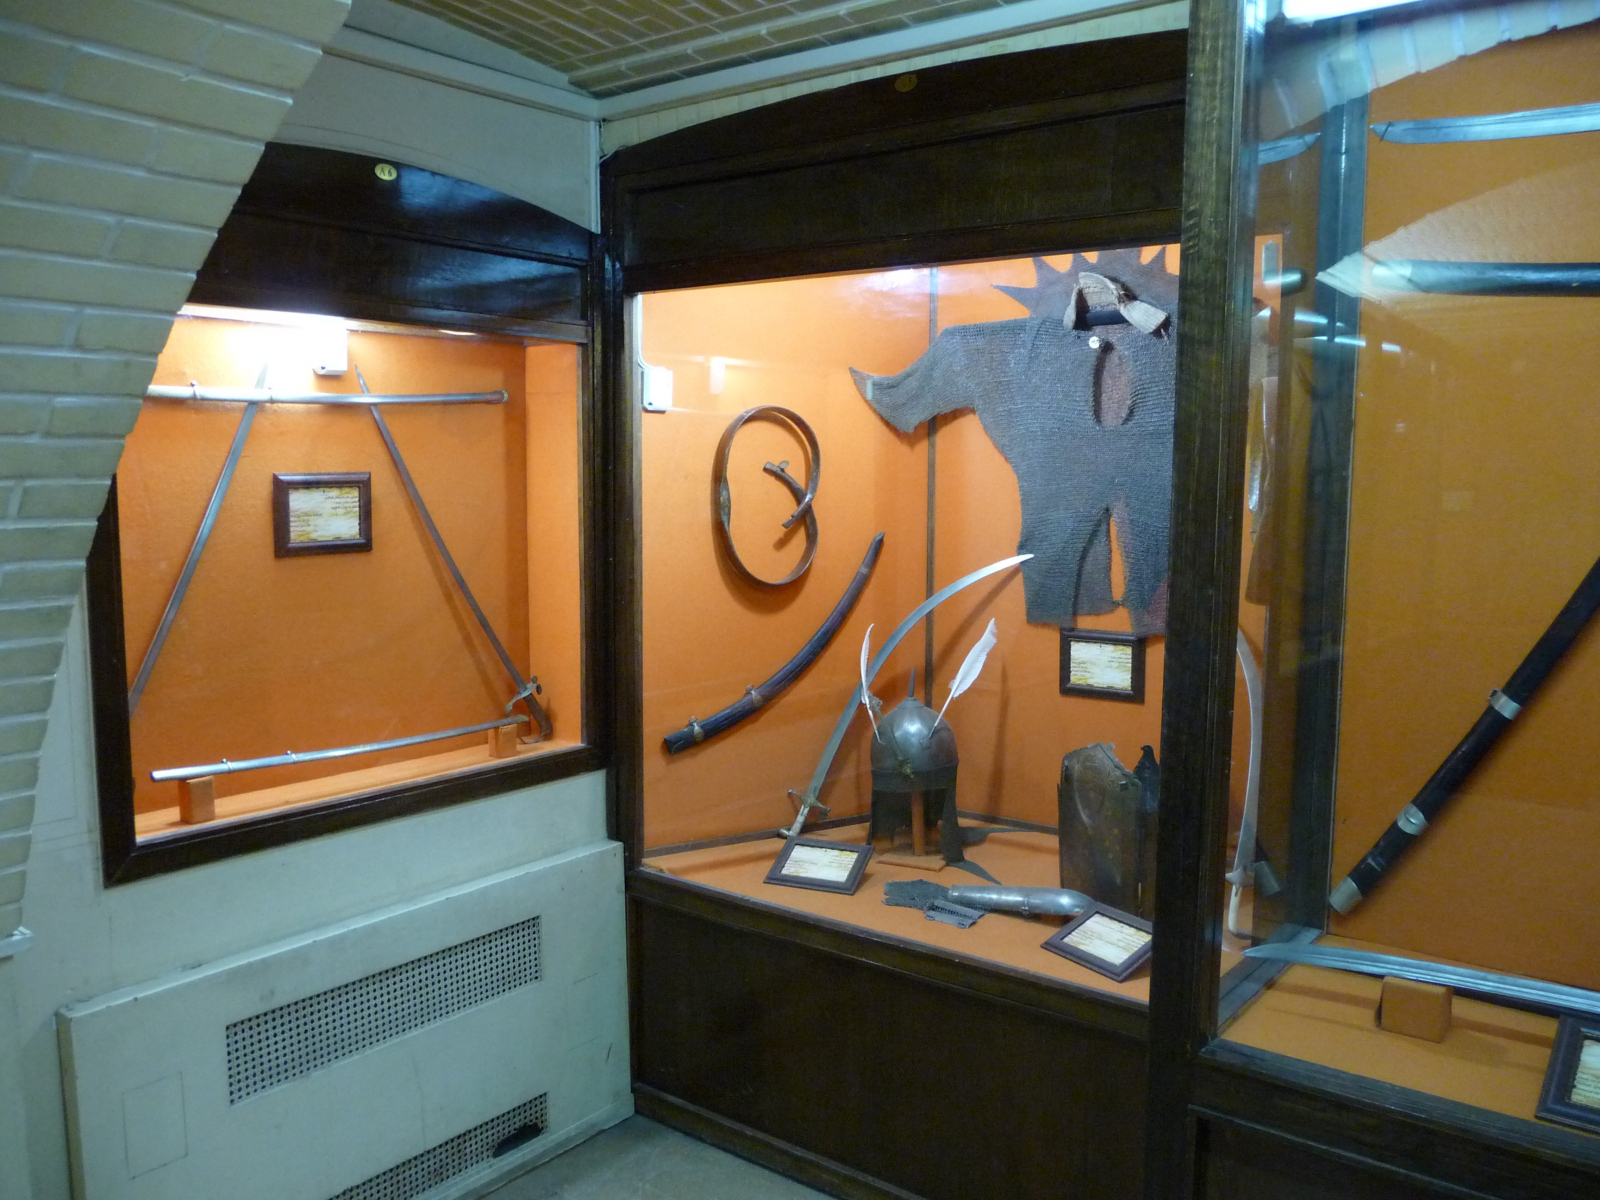 Baq-e Afifabad - Museum - Weapons Steel - Iran